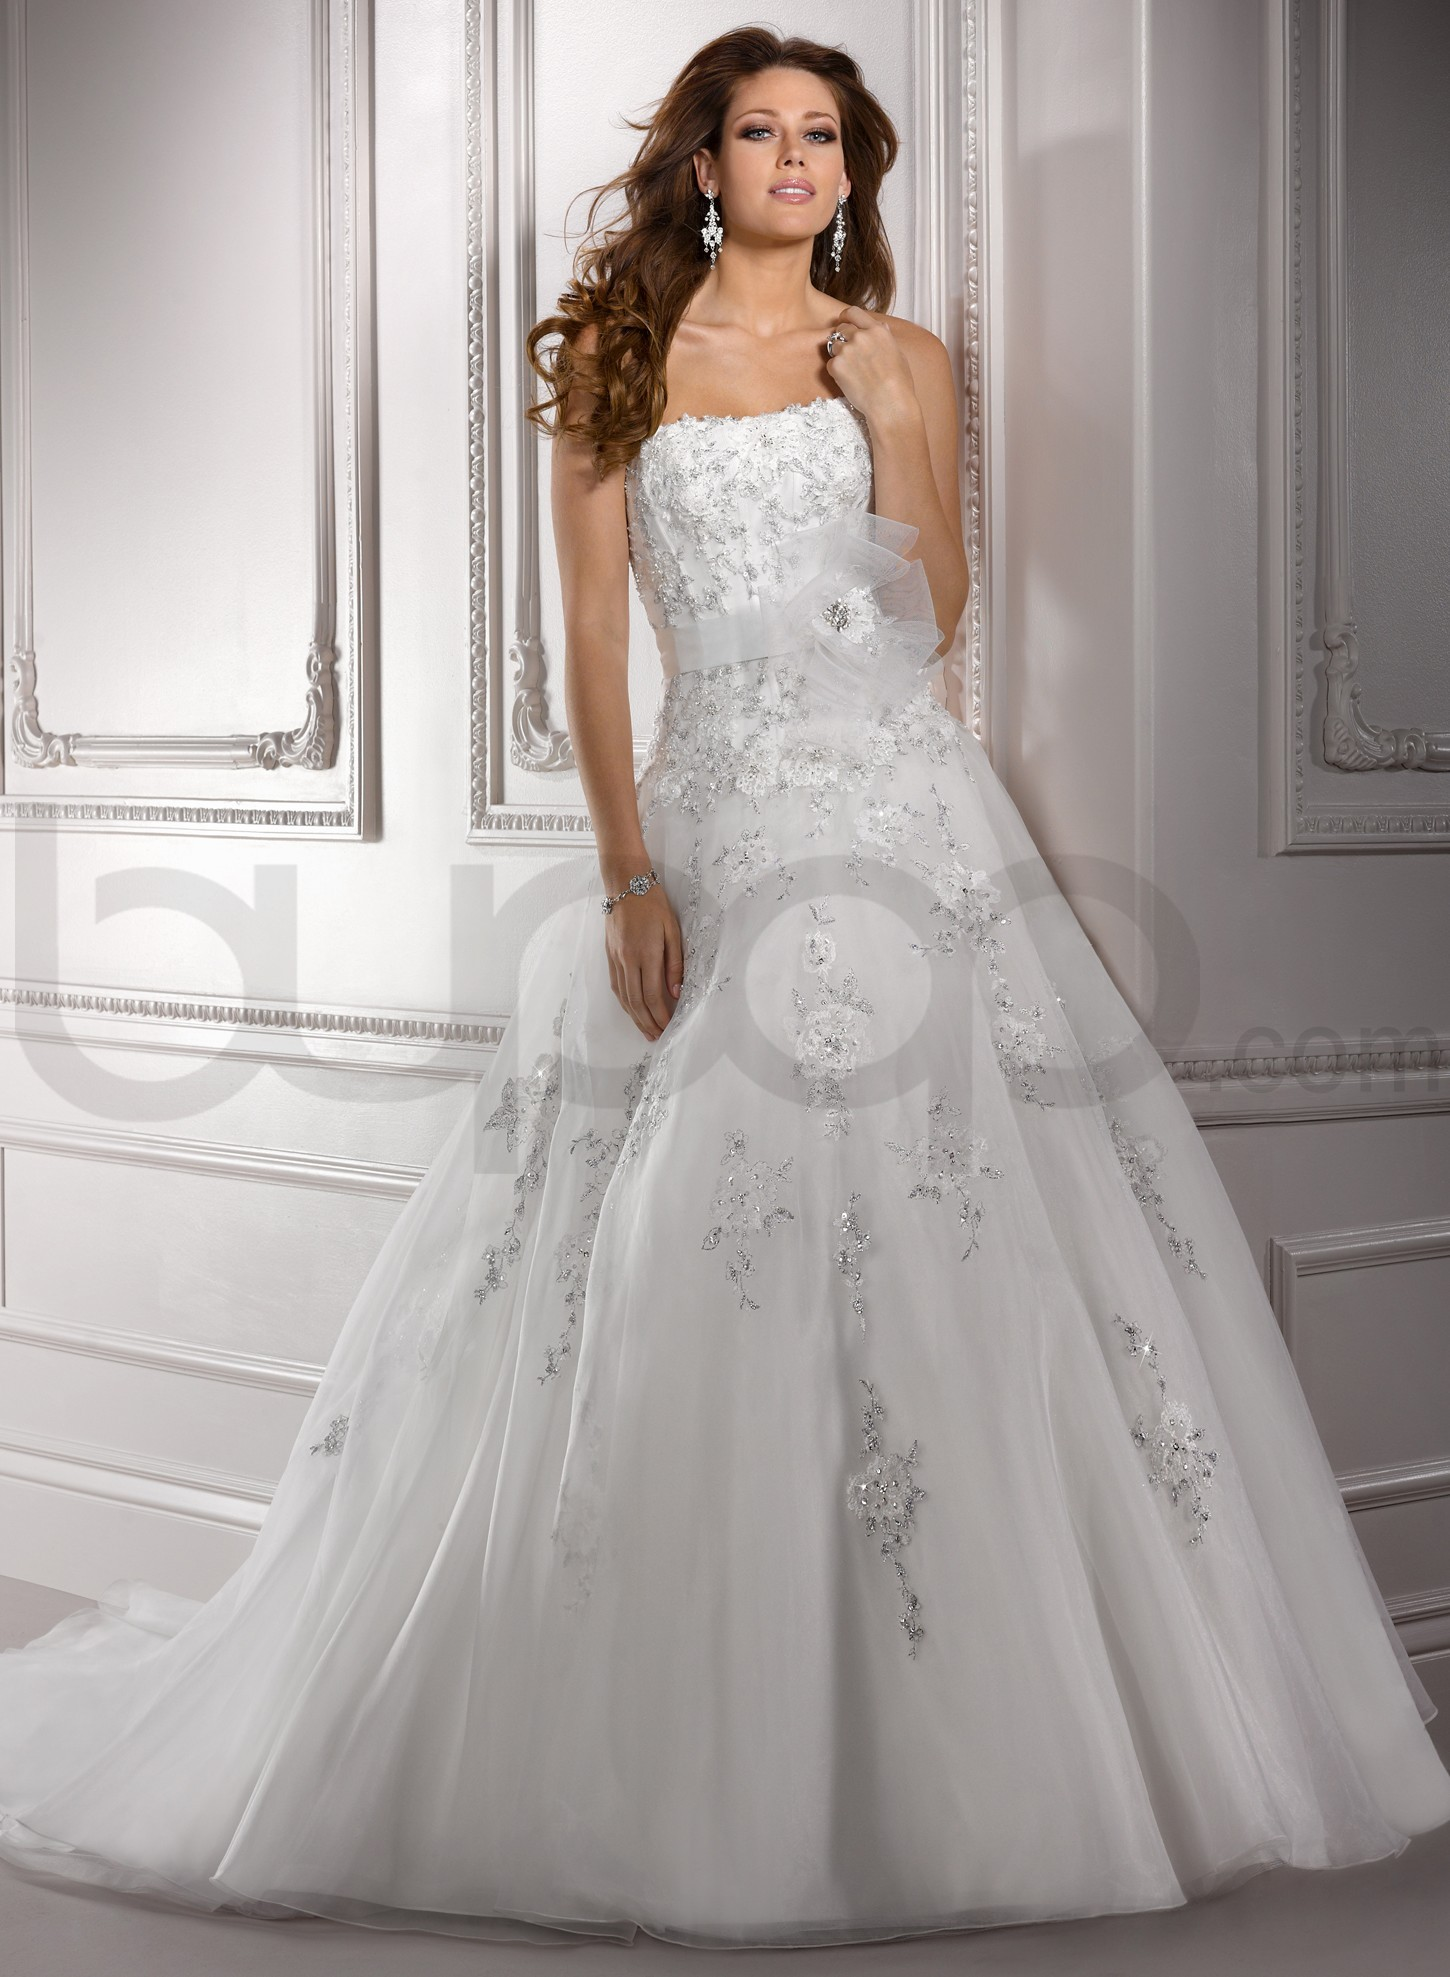 strapless ball gown wedding dresses for sexy bridal look wedding dresses strapless strapless ball gown wedding dress